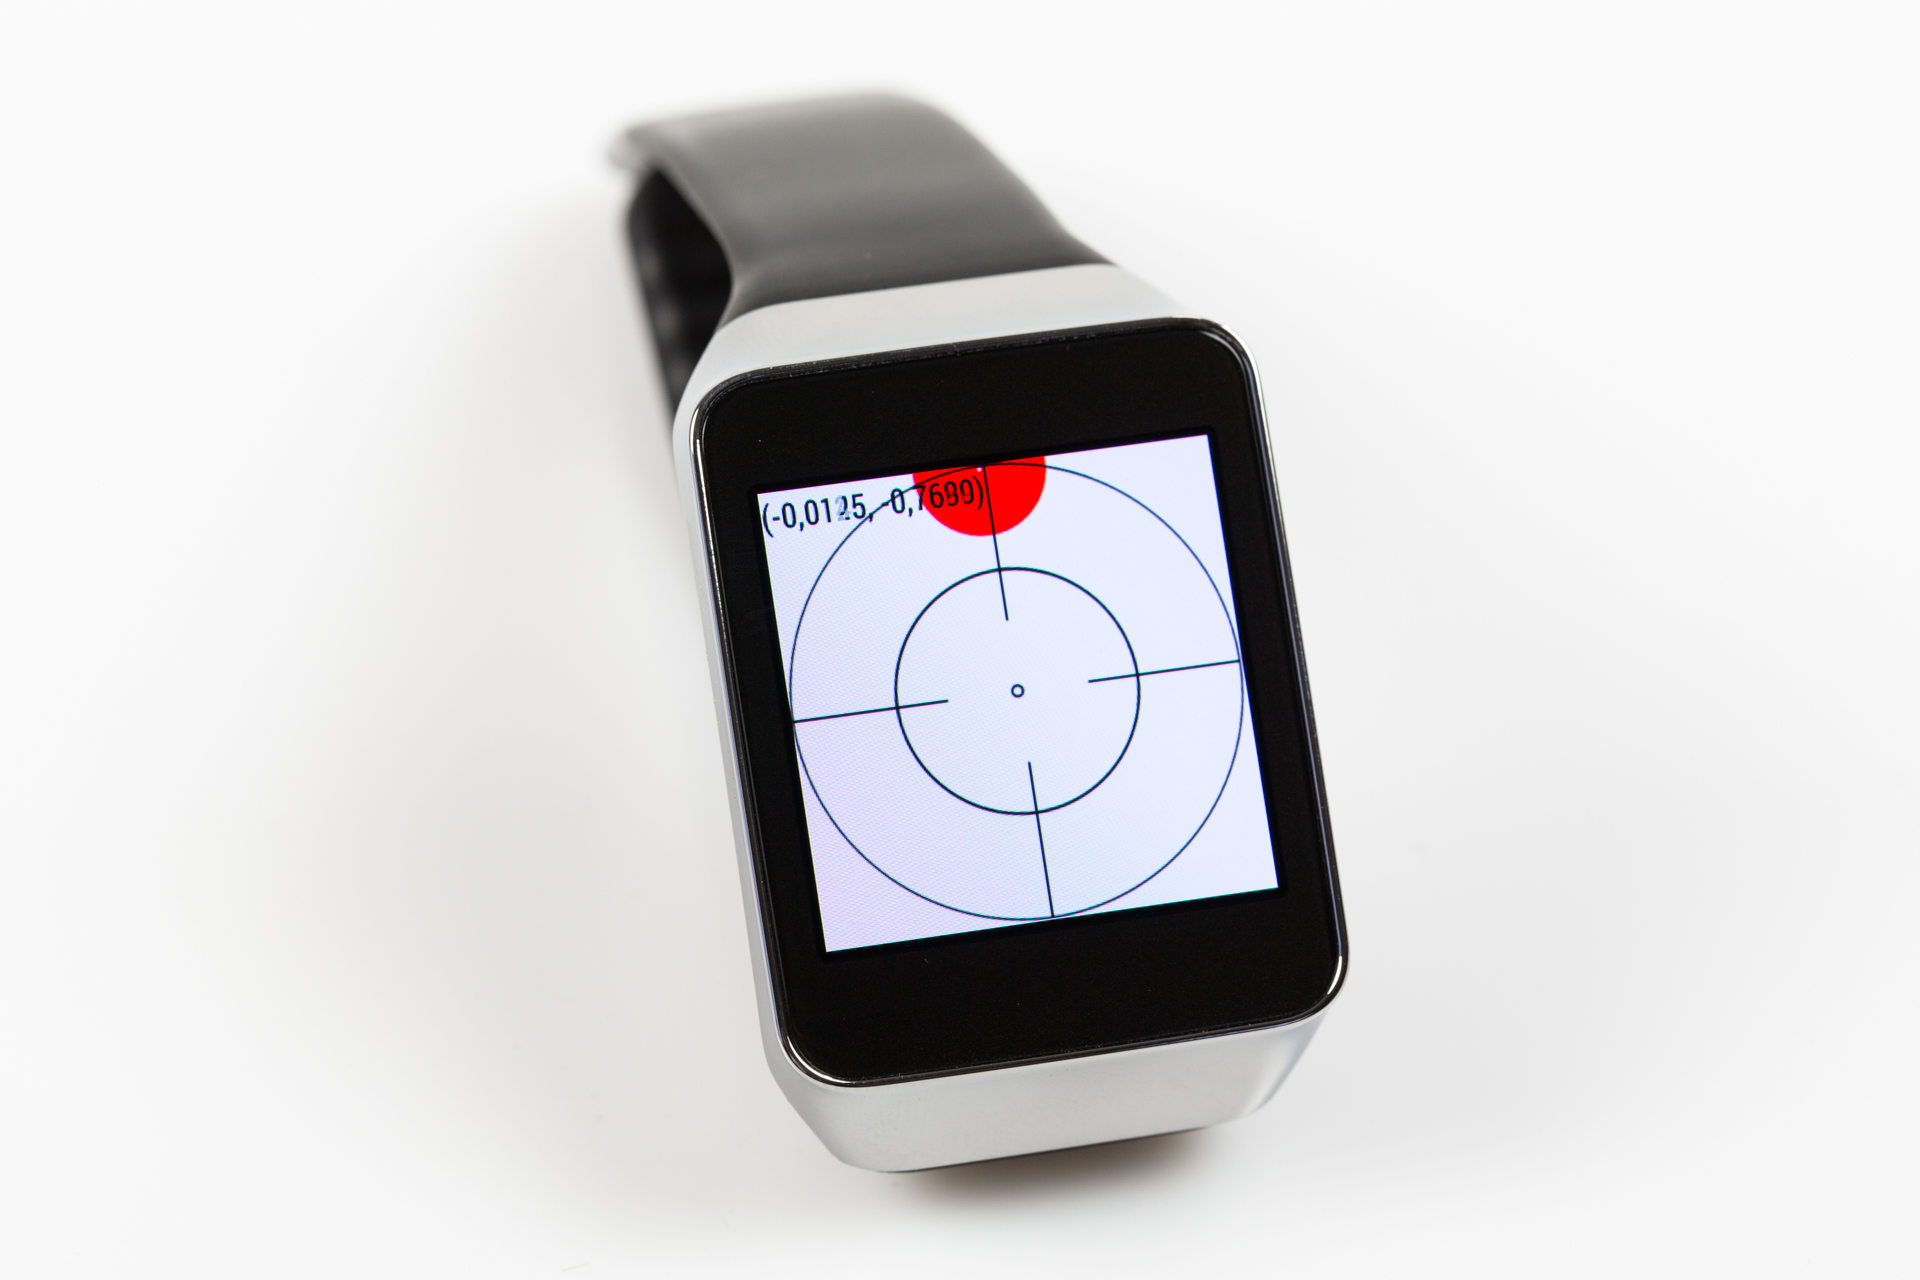 Android Wear: Pimp my watch -